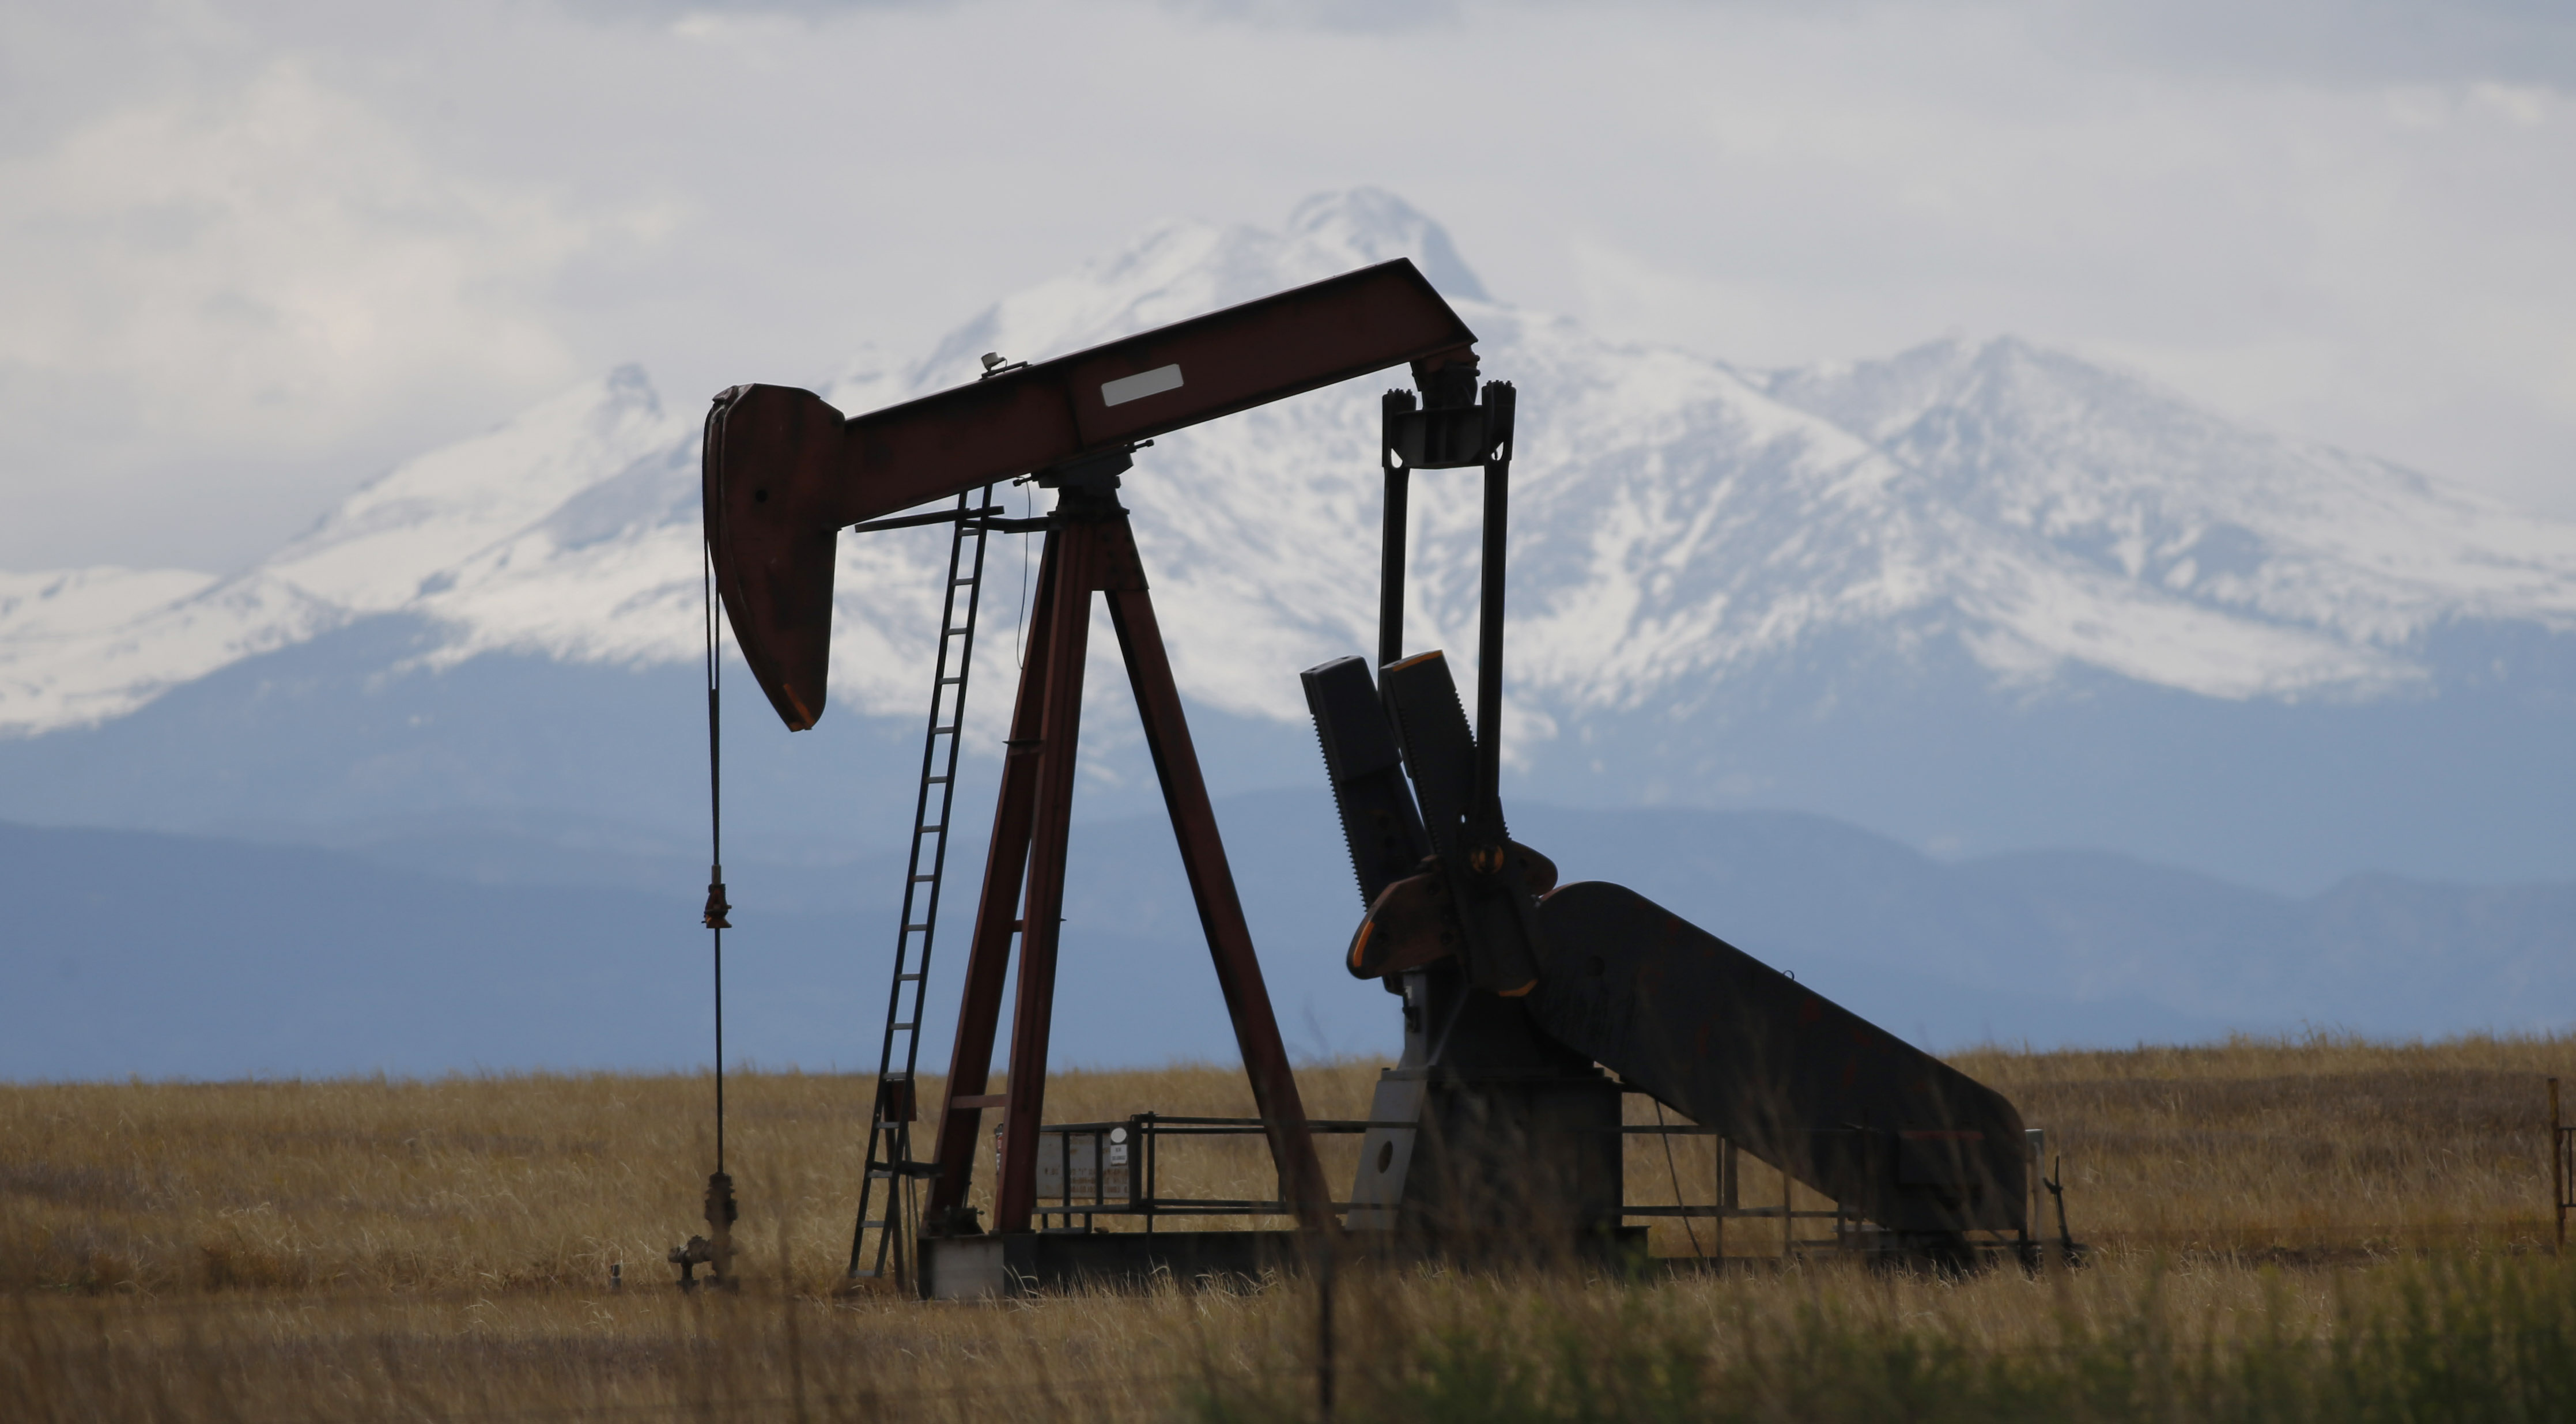 <p>In thisMay 2016, photograph, a pump jack works off state Highway 119 near Firestone, Colo.</p>